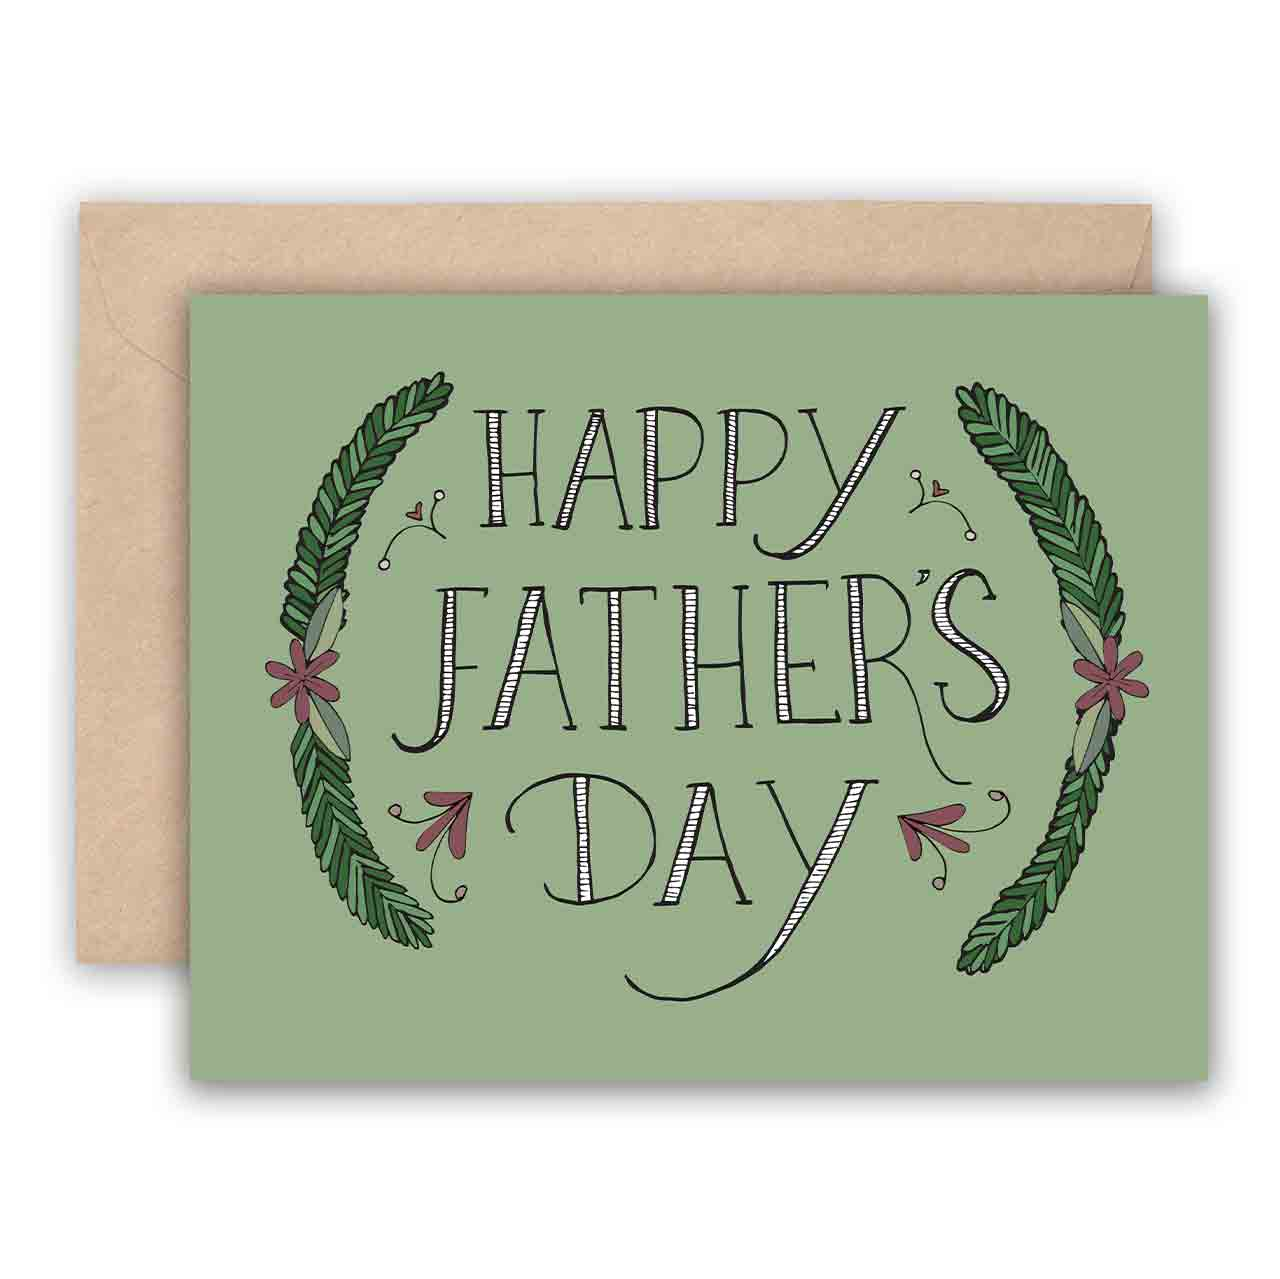 Father's Day Card - Hand Lettered with Green Garland, Jodi Lynn Burton, Handcrafted Home Goods and Gifts